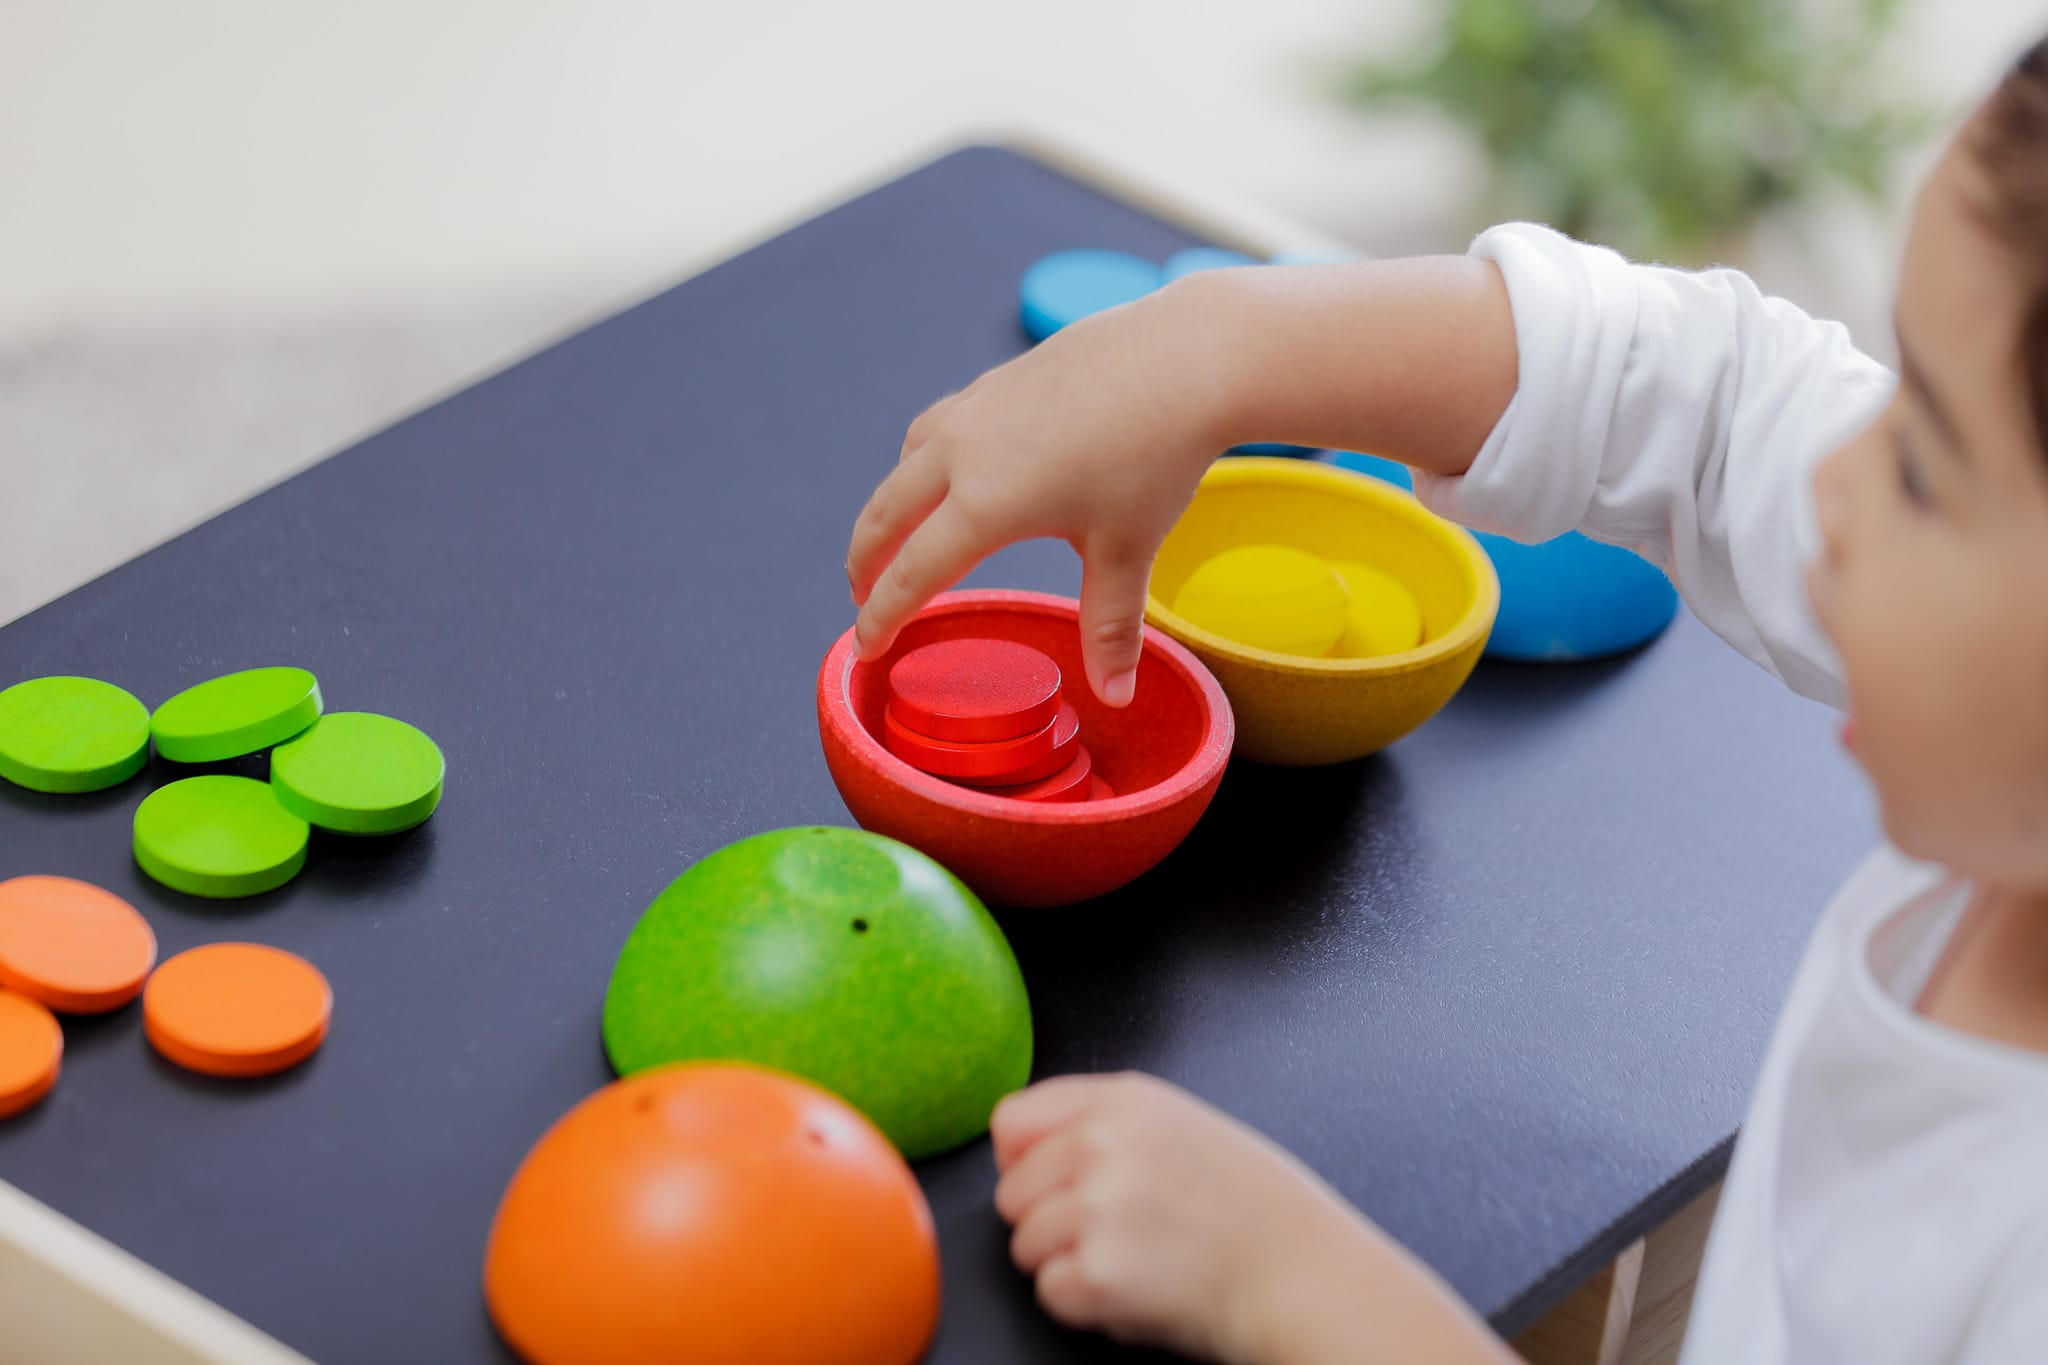 5360_PlanToys_SORT_and_COUNT_CUPS_Learning_and_Education_Mathematical_Fine_Motor_Coordination_18m_Wooden_toys_Education_toys_Safety_Toys_Non-toxic_5.jpg